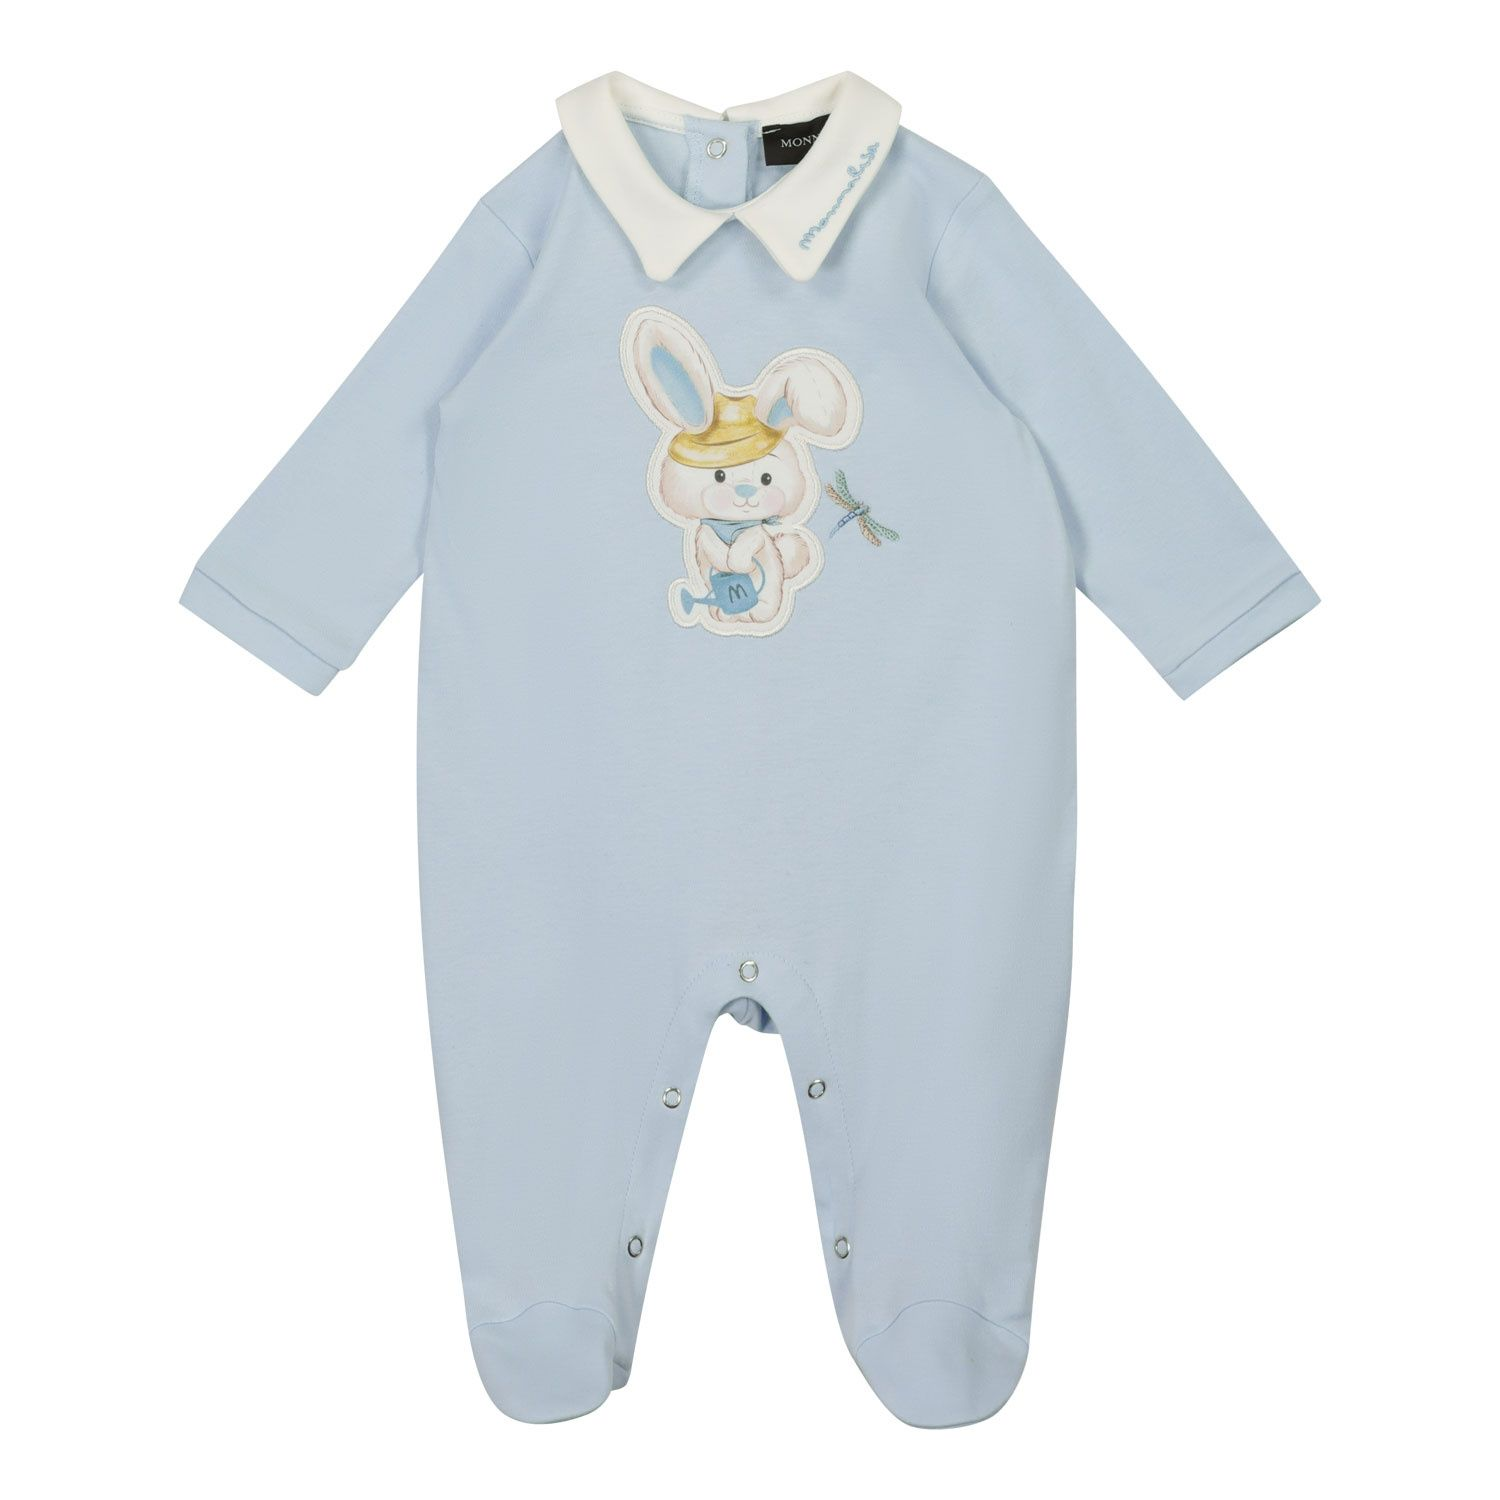 Picture of MonnaLisa 227206 baby playsuit light blue